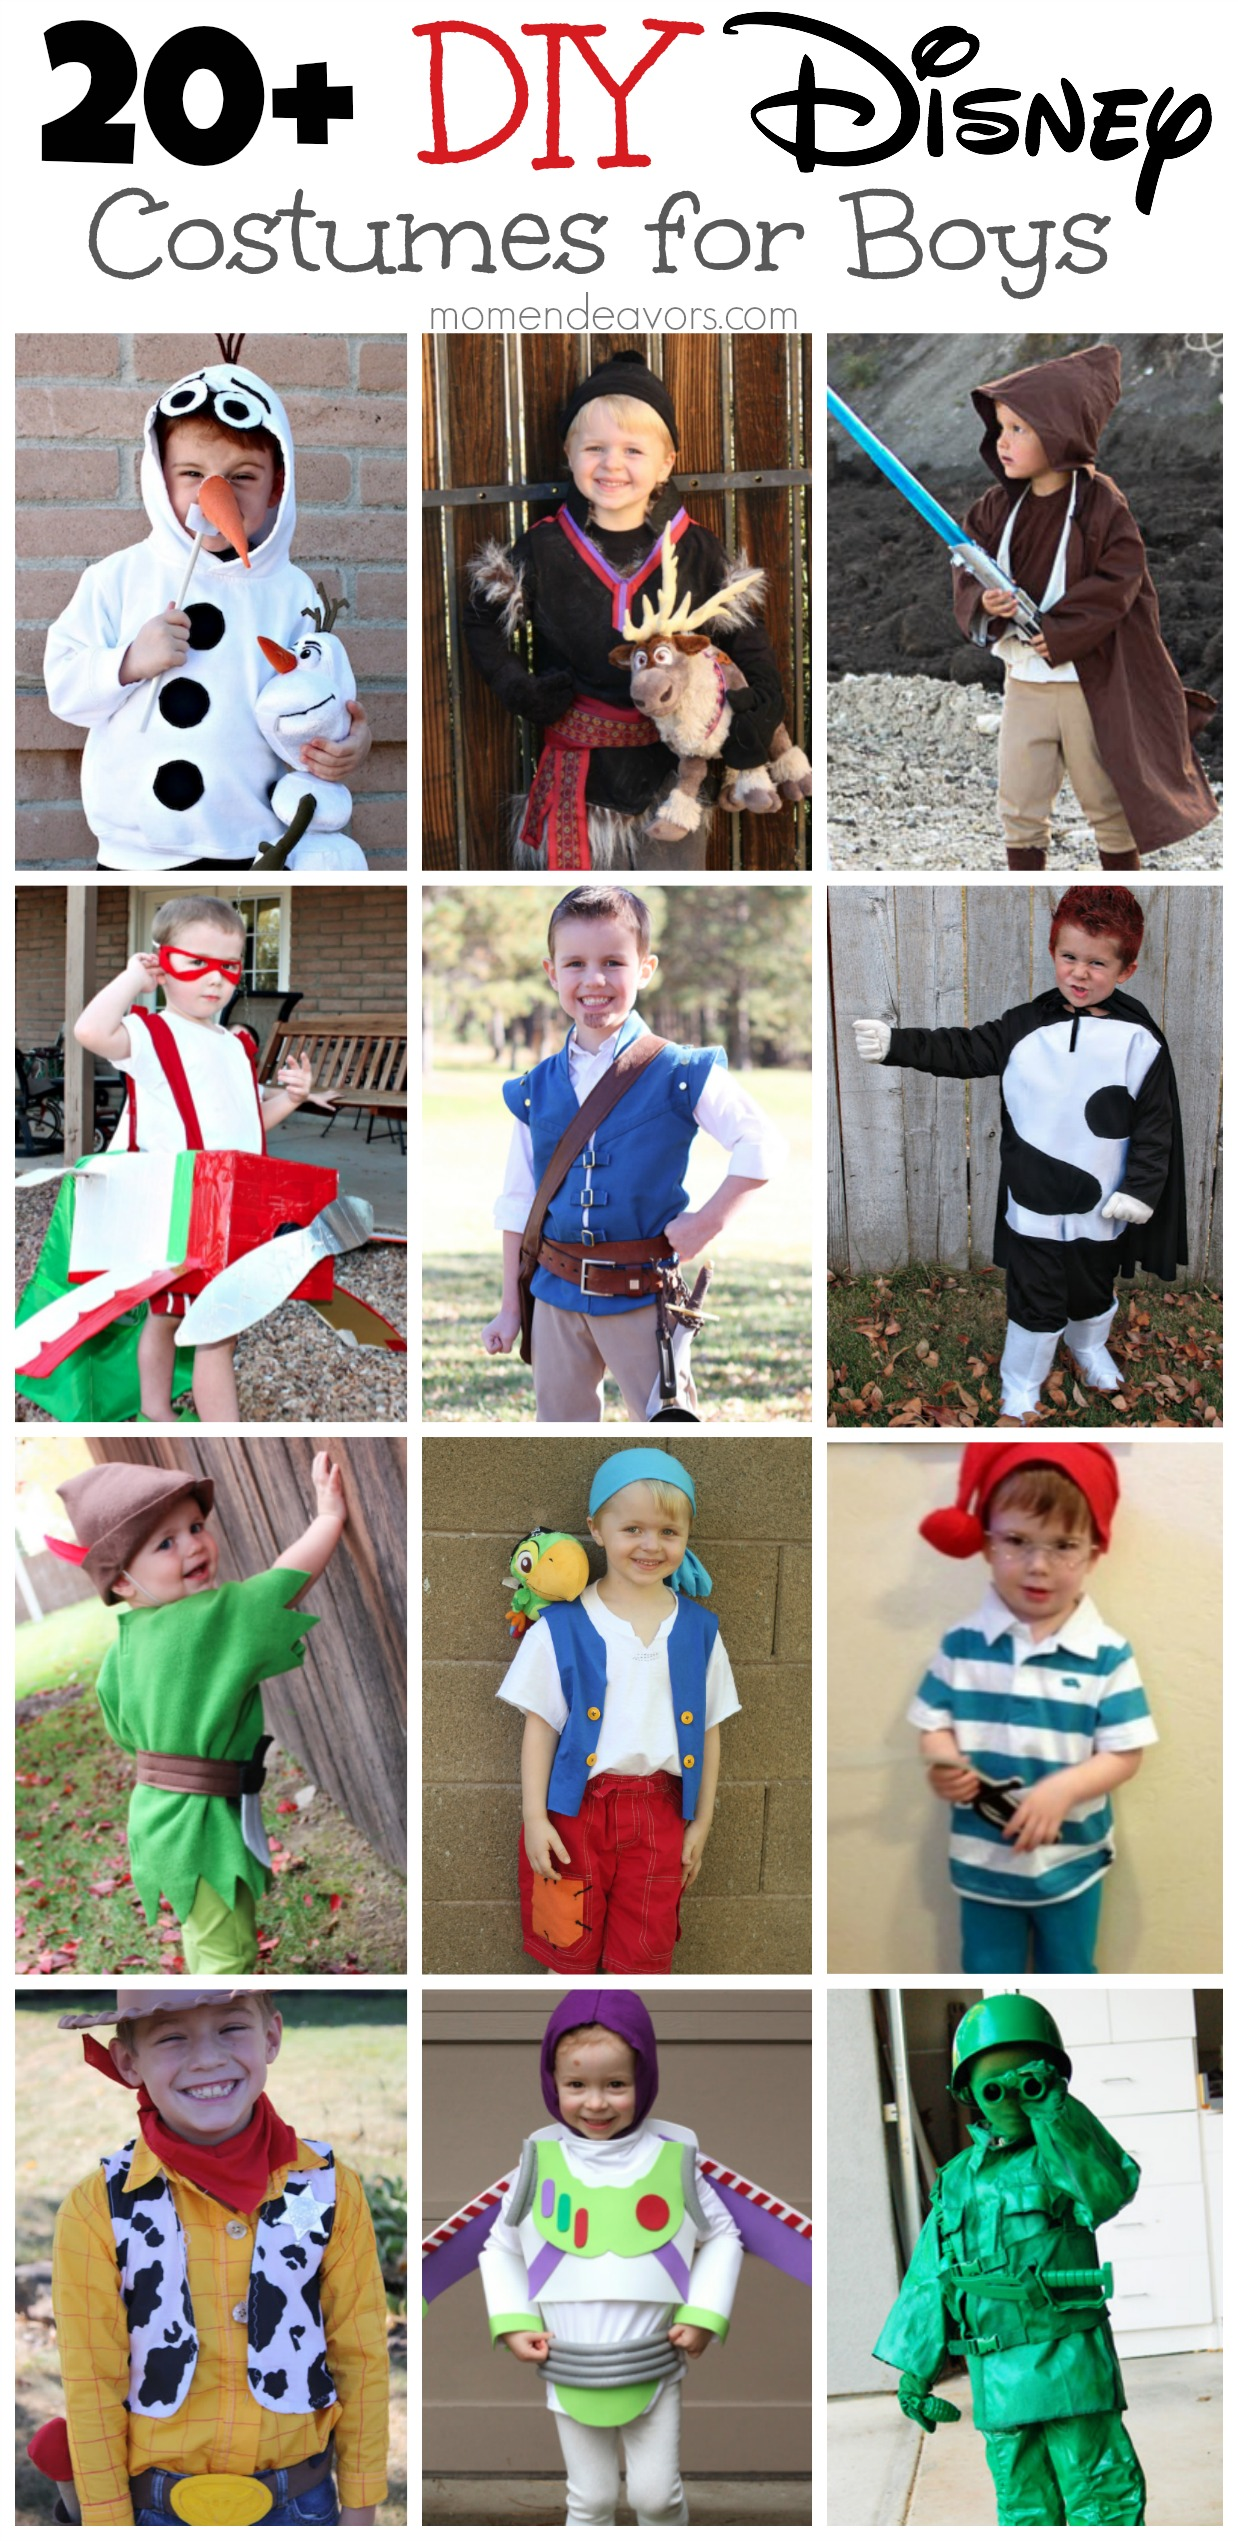 20 diy disney halloween costumes diy disney costumes for boys solutioingenieria Images